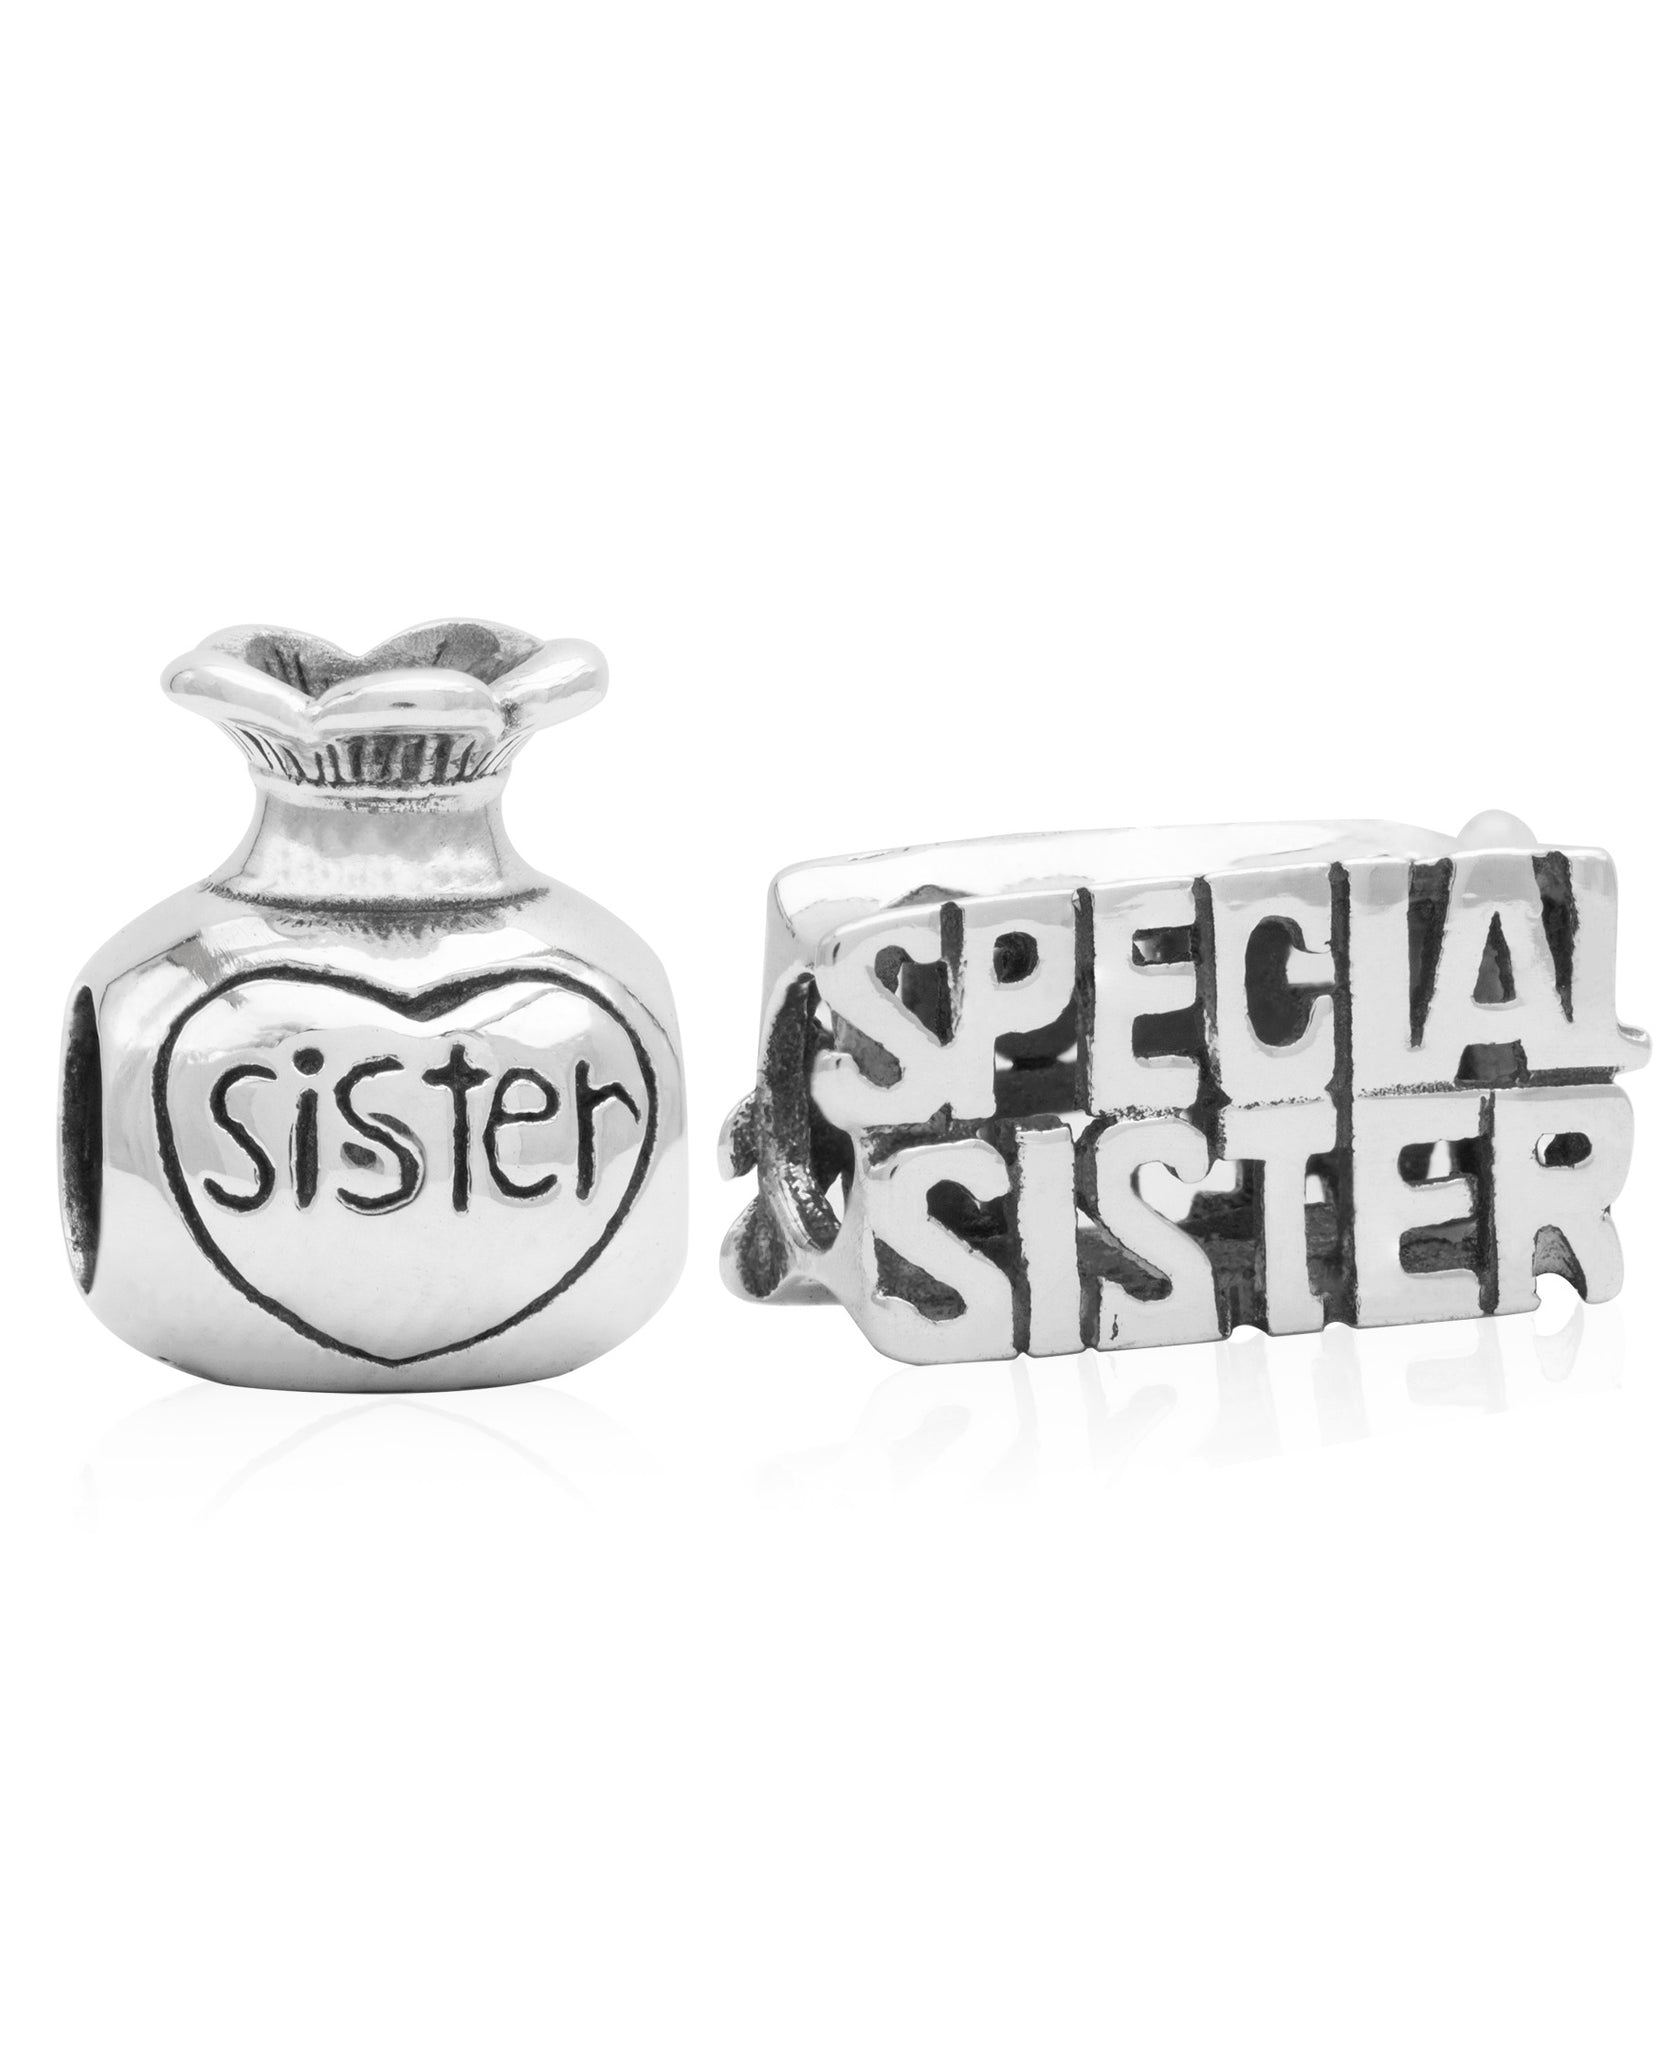 Children's Sterling Silver Special Sister Bead Charms - Set of 2 - Rhona Sutton Jewellery